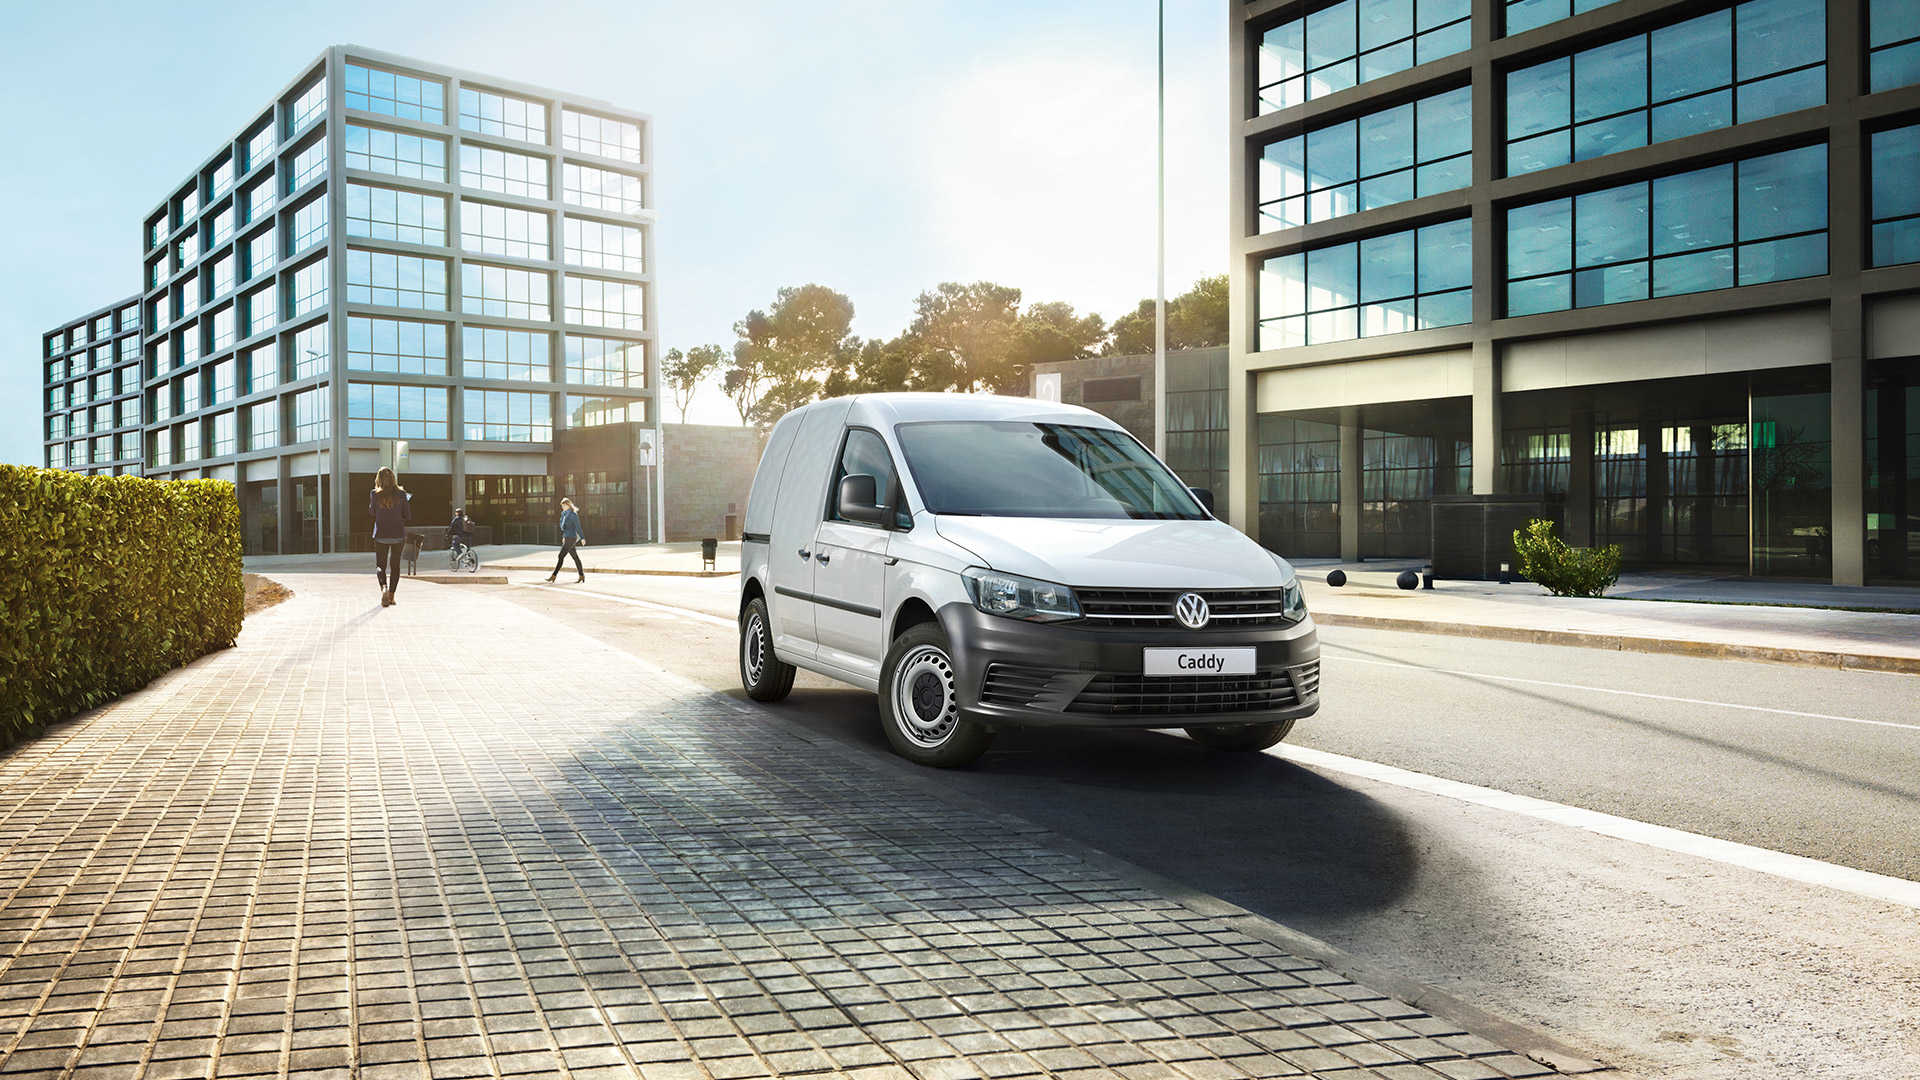 Used Volkswagen (VW) Caddy For Sale | Lookers